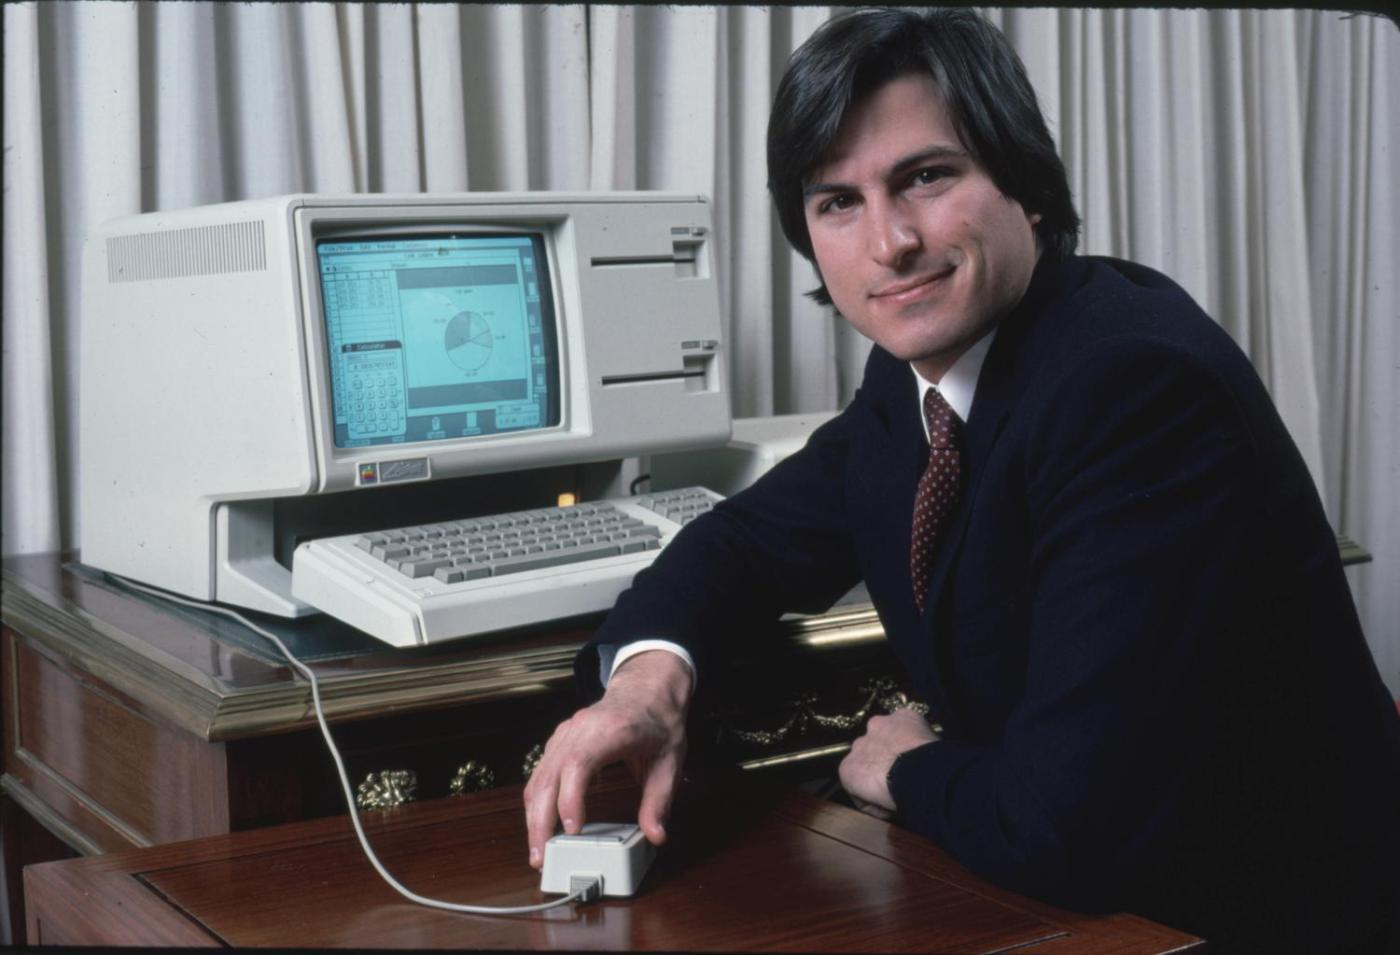 Steve Jobs poses with the Lisa computer during a 1983 press preview.